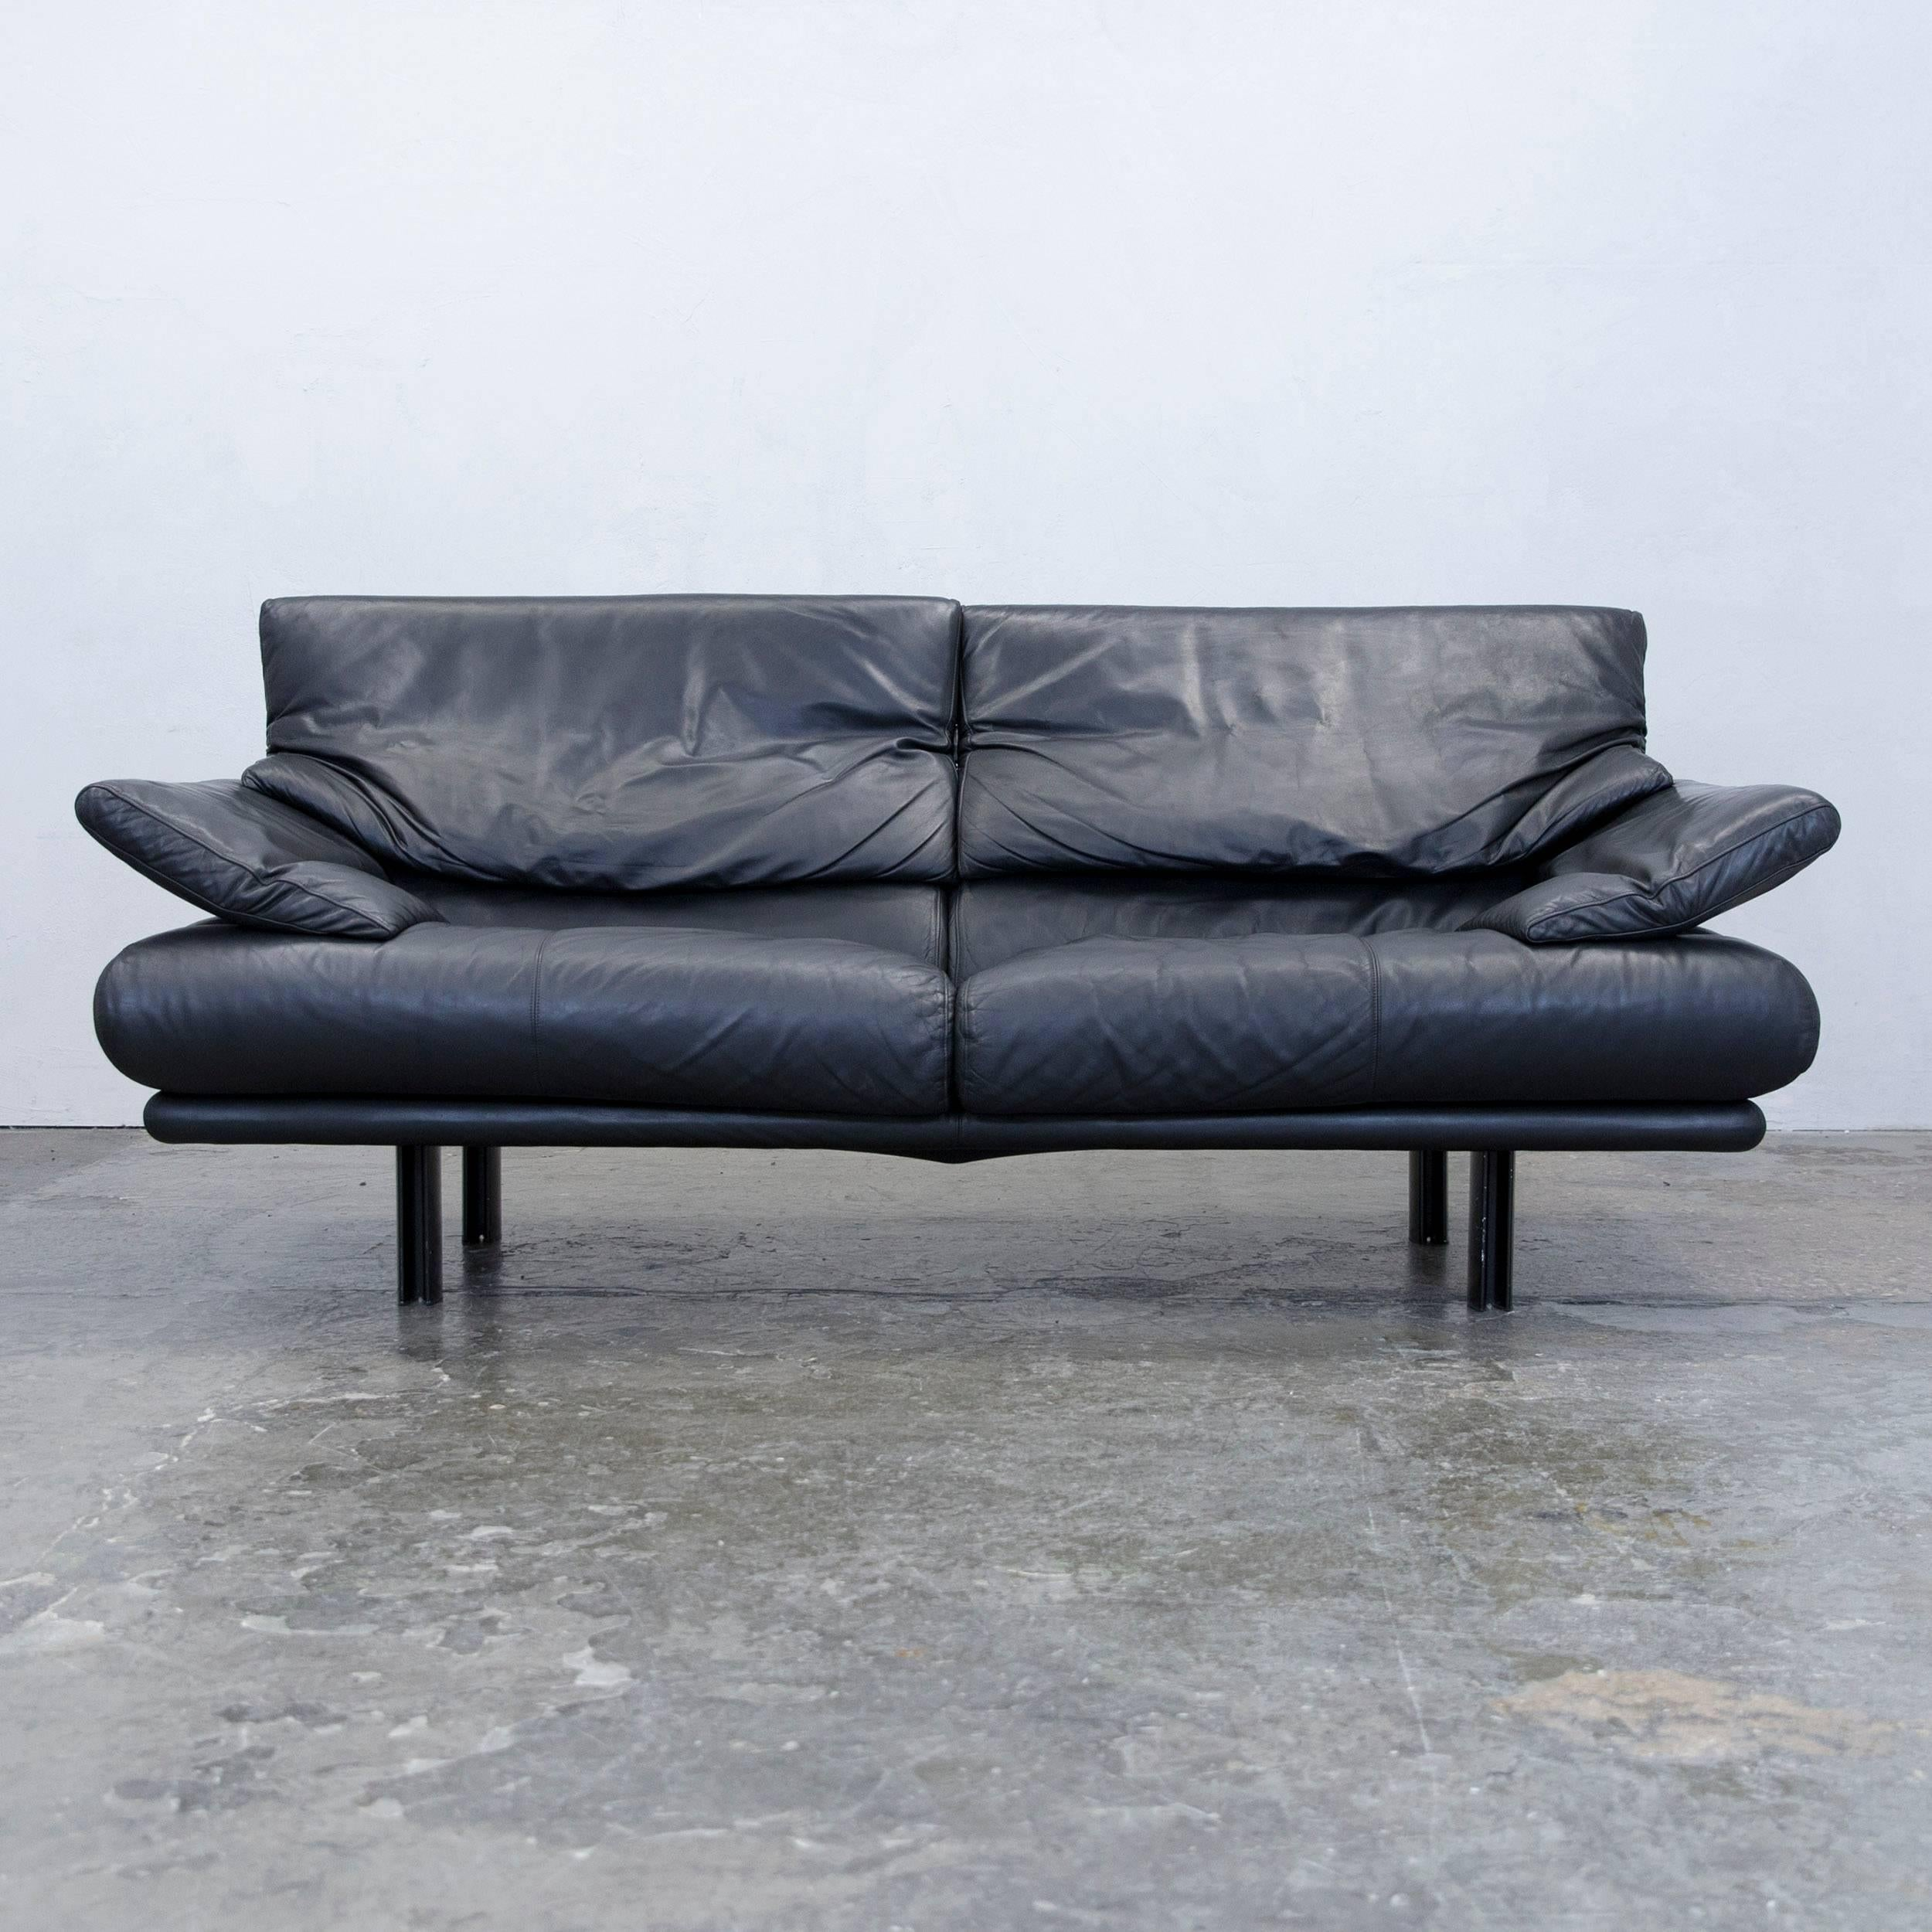 Bettsofa Hamburg Deluxe Boxspring Polstermbel Big Sofa Schwarz Polsterbett With Boxspring